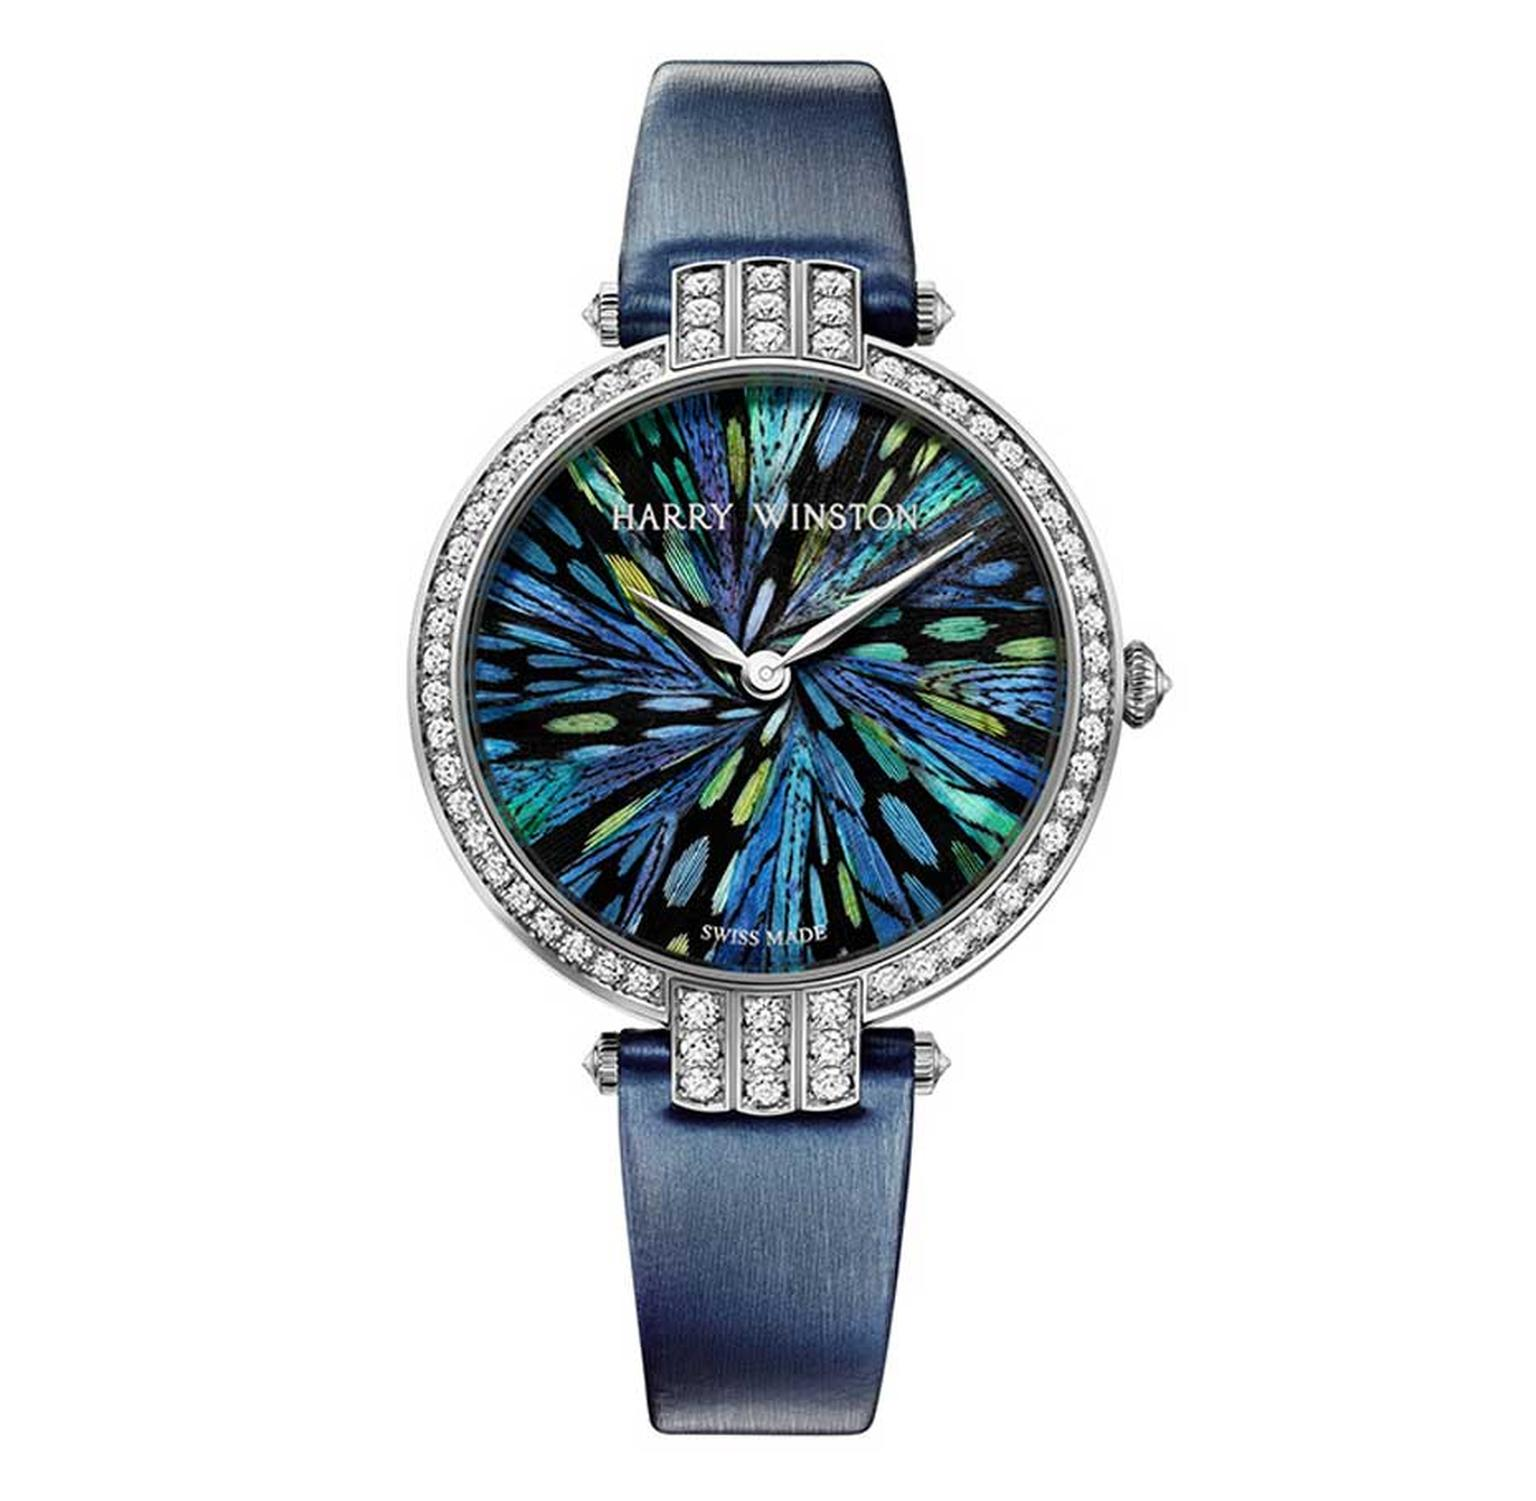 Harry Winston Premier Collection with a marquetry dial of silvered pheasant and guinea fowl feathers.